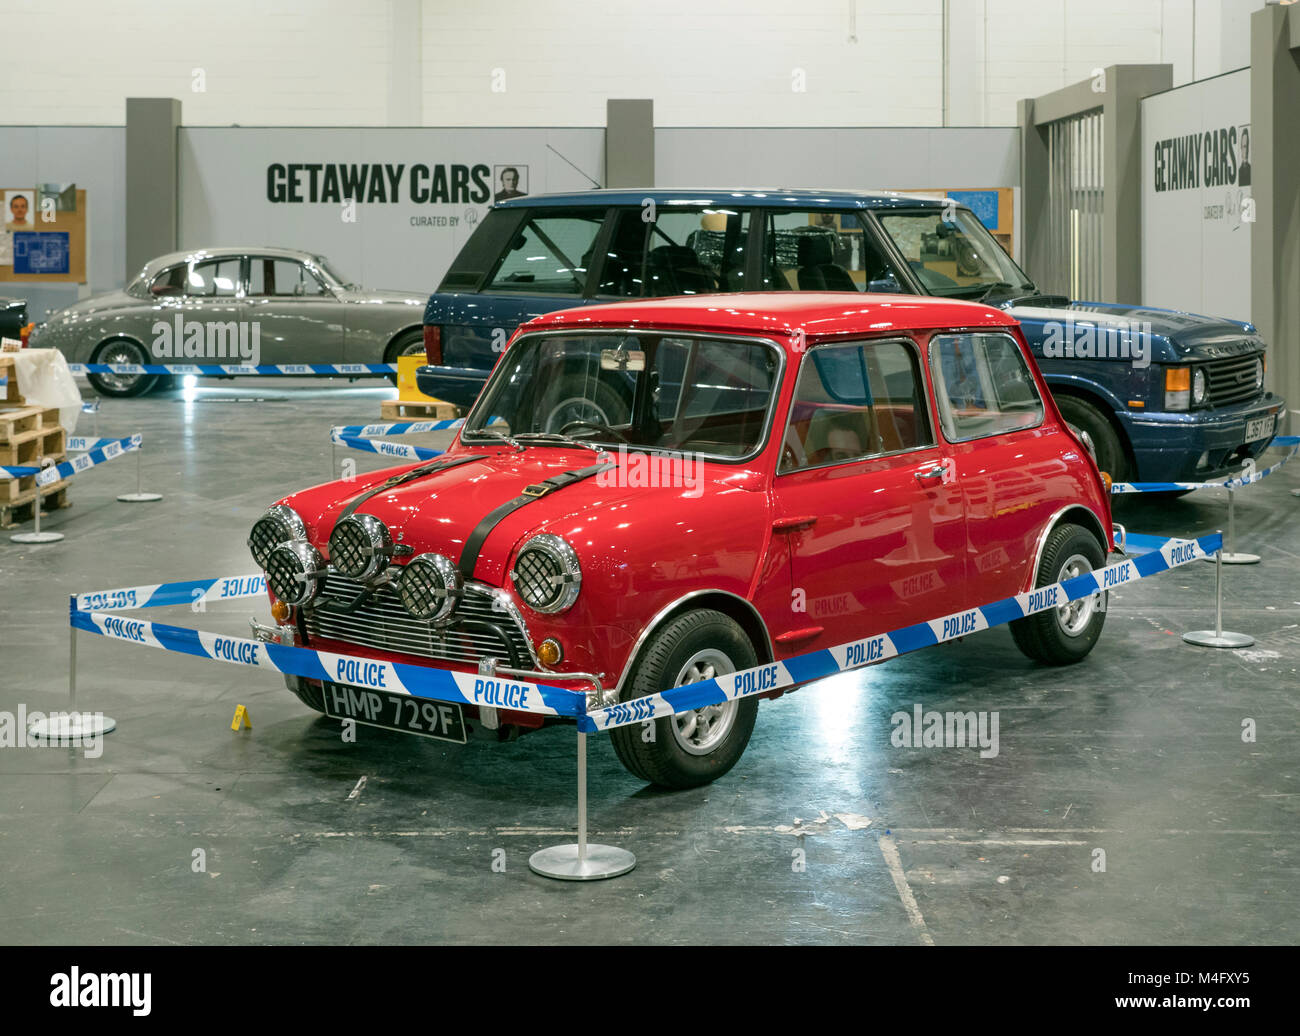 London, UK. 15th Febraury, 2018. Getaway car display, Italian job BMC Mini Cooper at The London Classic car show - Stock Image